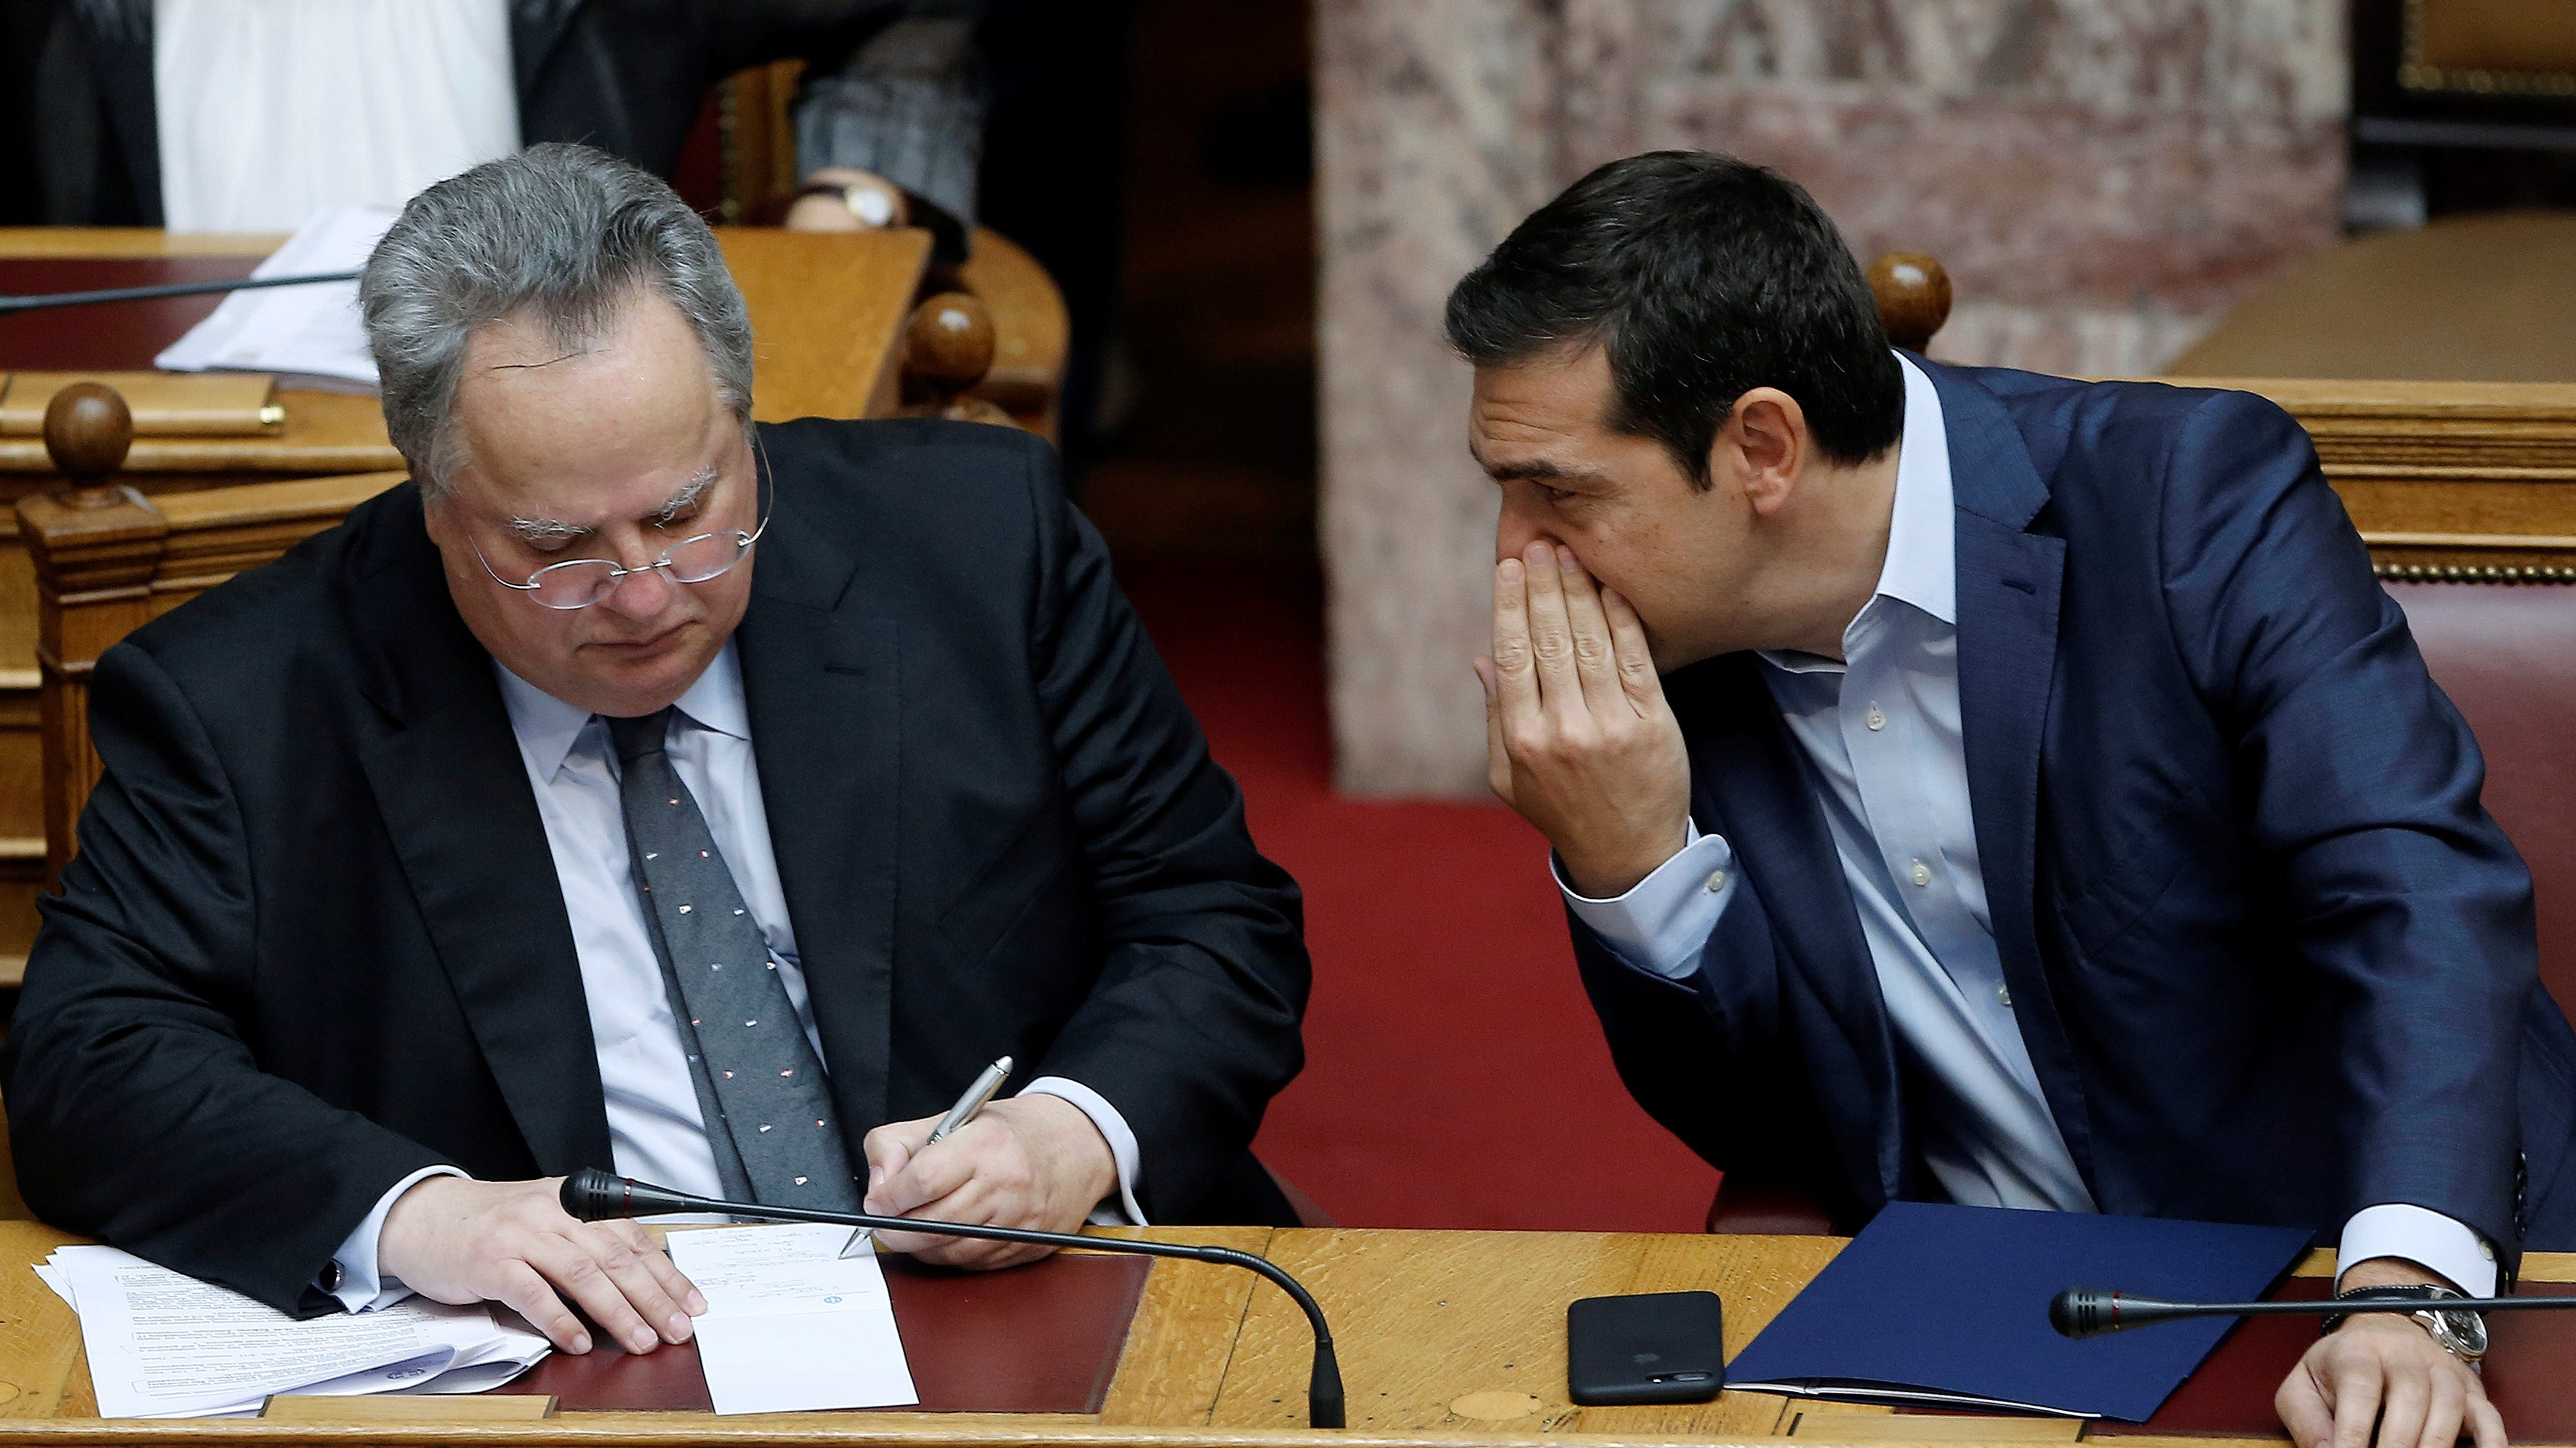 Greek Prime Minister Alexis Tsipras (R) talks with Greek Foreign Minister Nikos Kotzias during a parliamentary session on the collapse of Cyprus peace talks in Athens, Greece July 11, 2017. REUTERS/Costas Baltas - RTX3AZPO